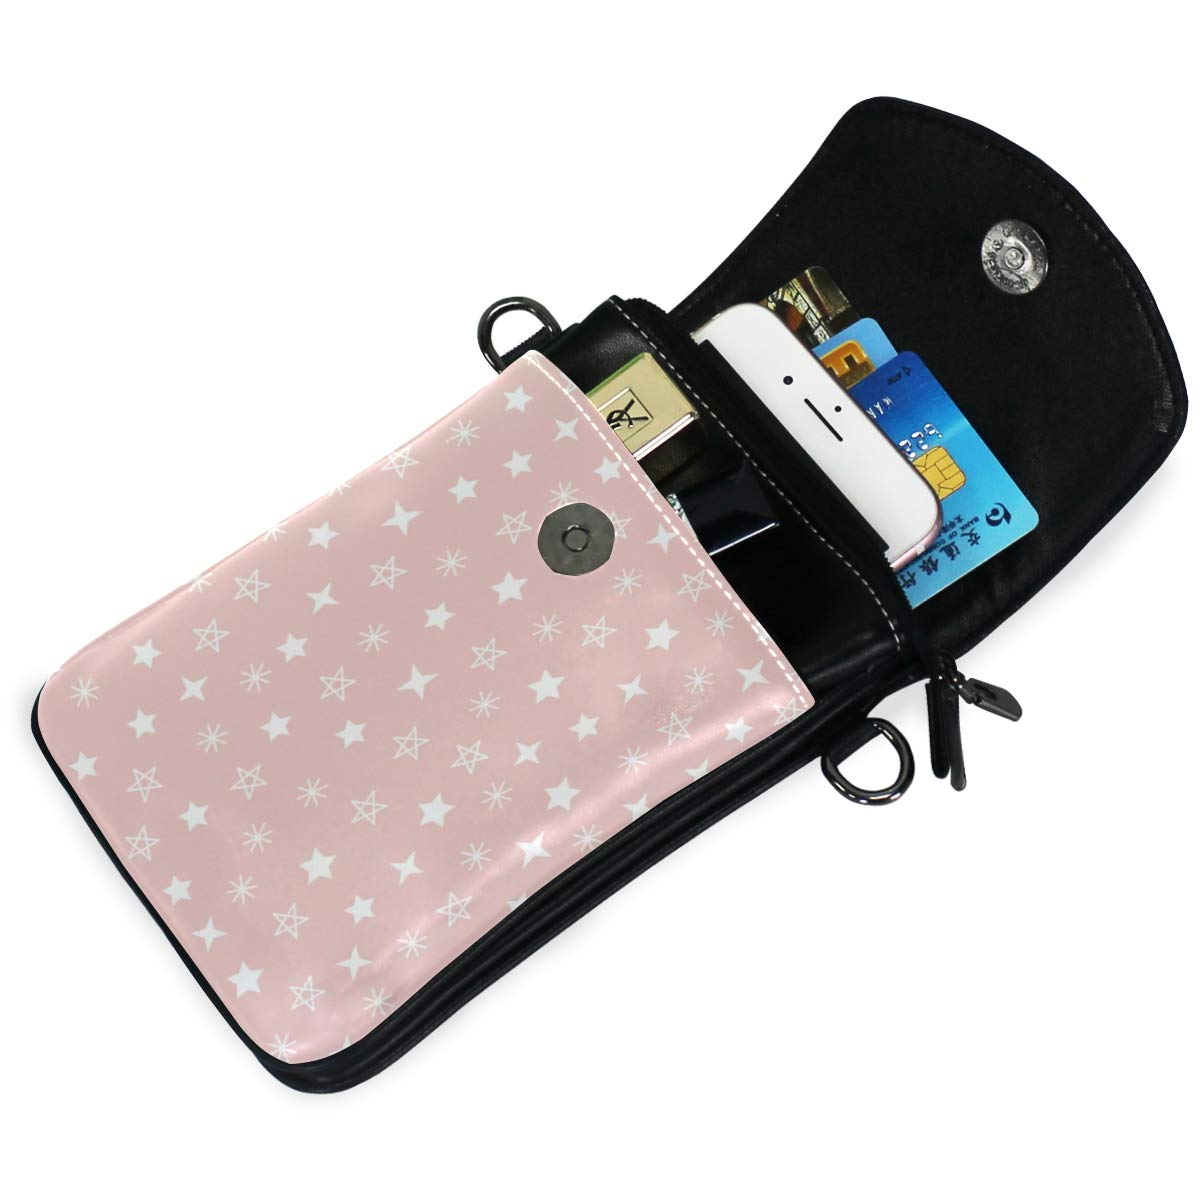 Small Crossbody Coin Purse Pink Background White Star for Women Bags Leather Multicolor Smartphone Bags Purse With Removable Strap